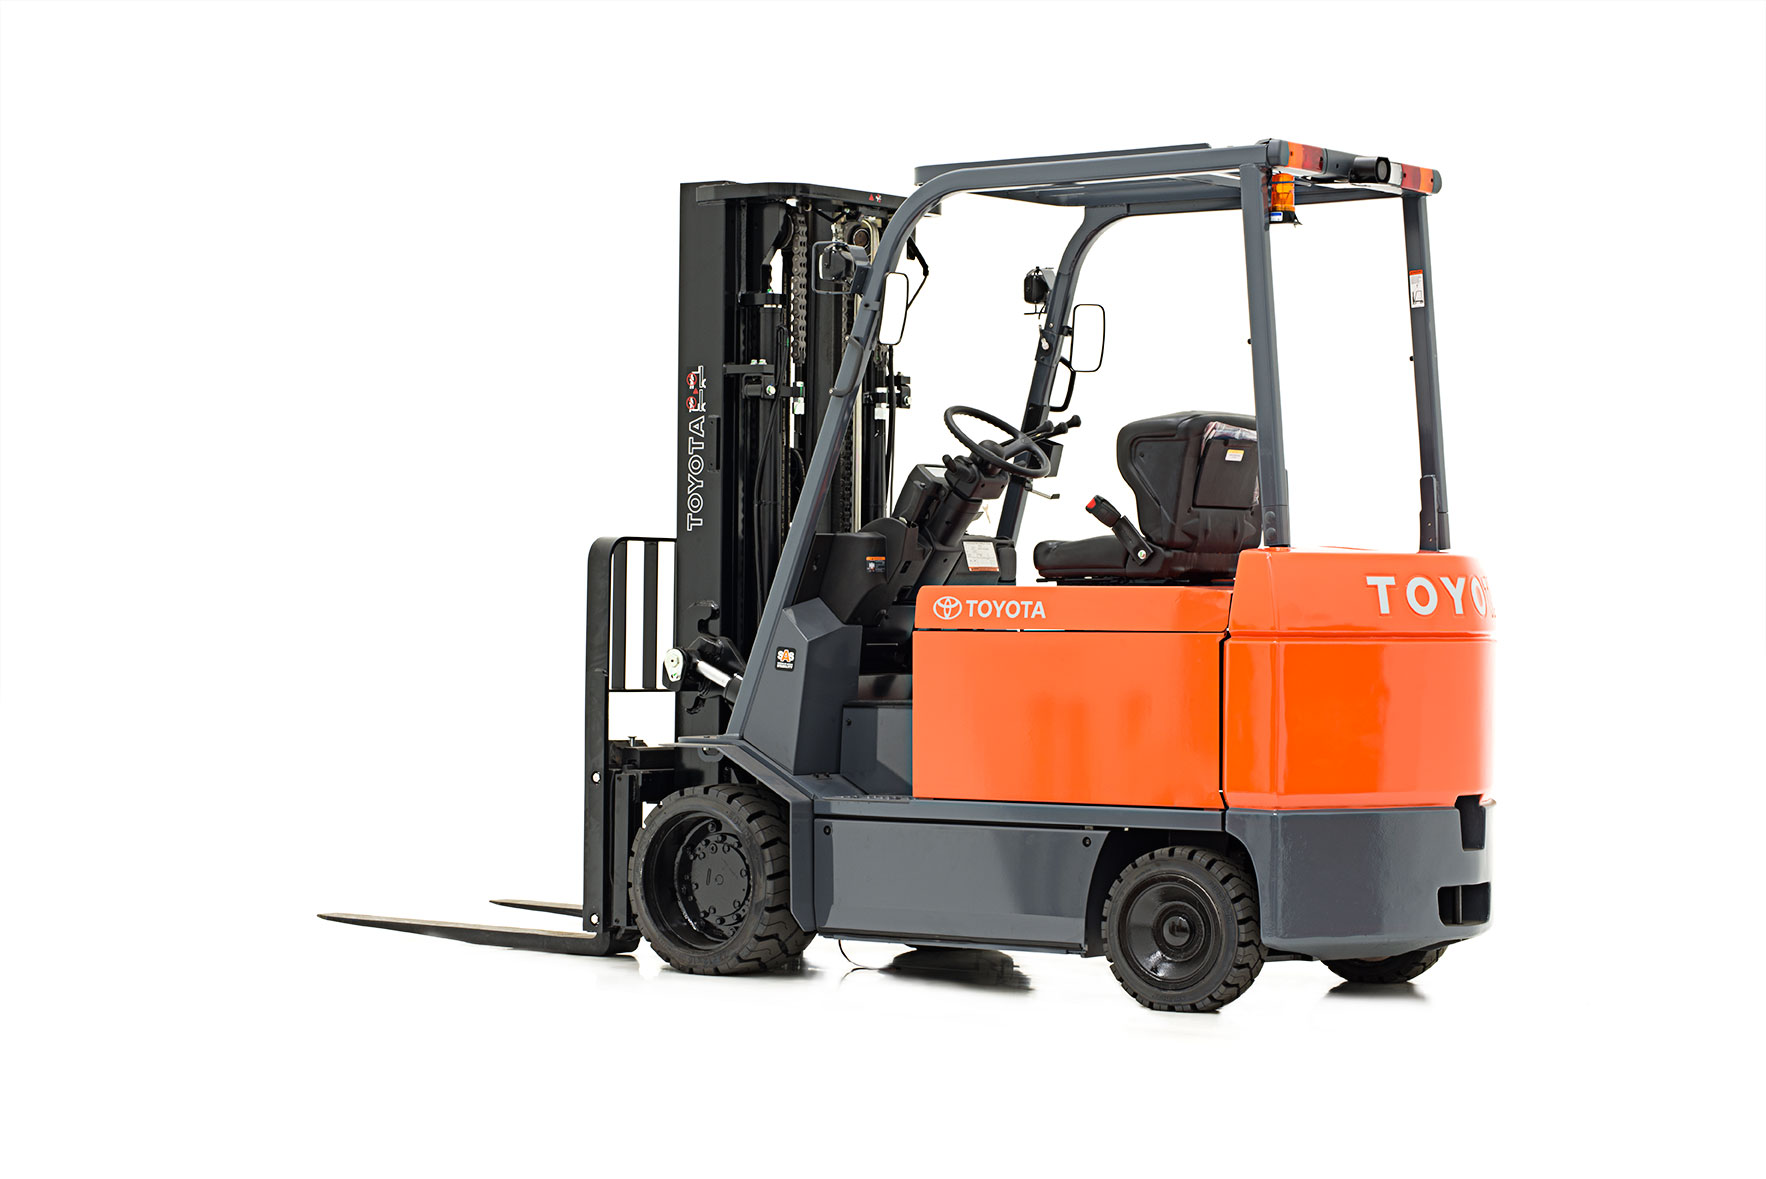 Forklift Decisions Internal Combustion Or Electric